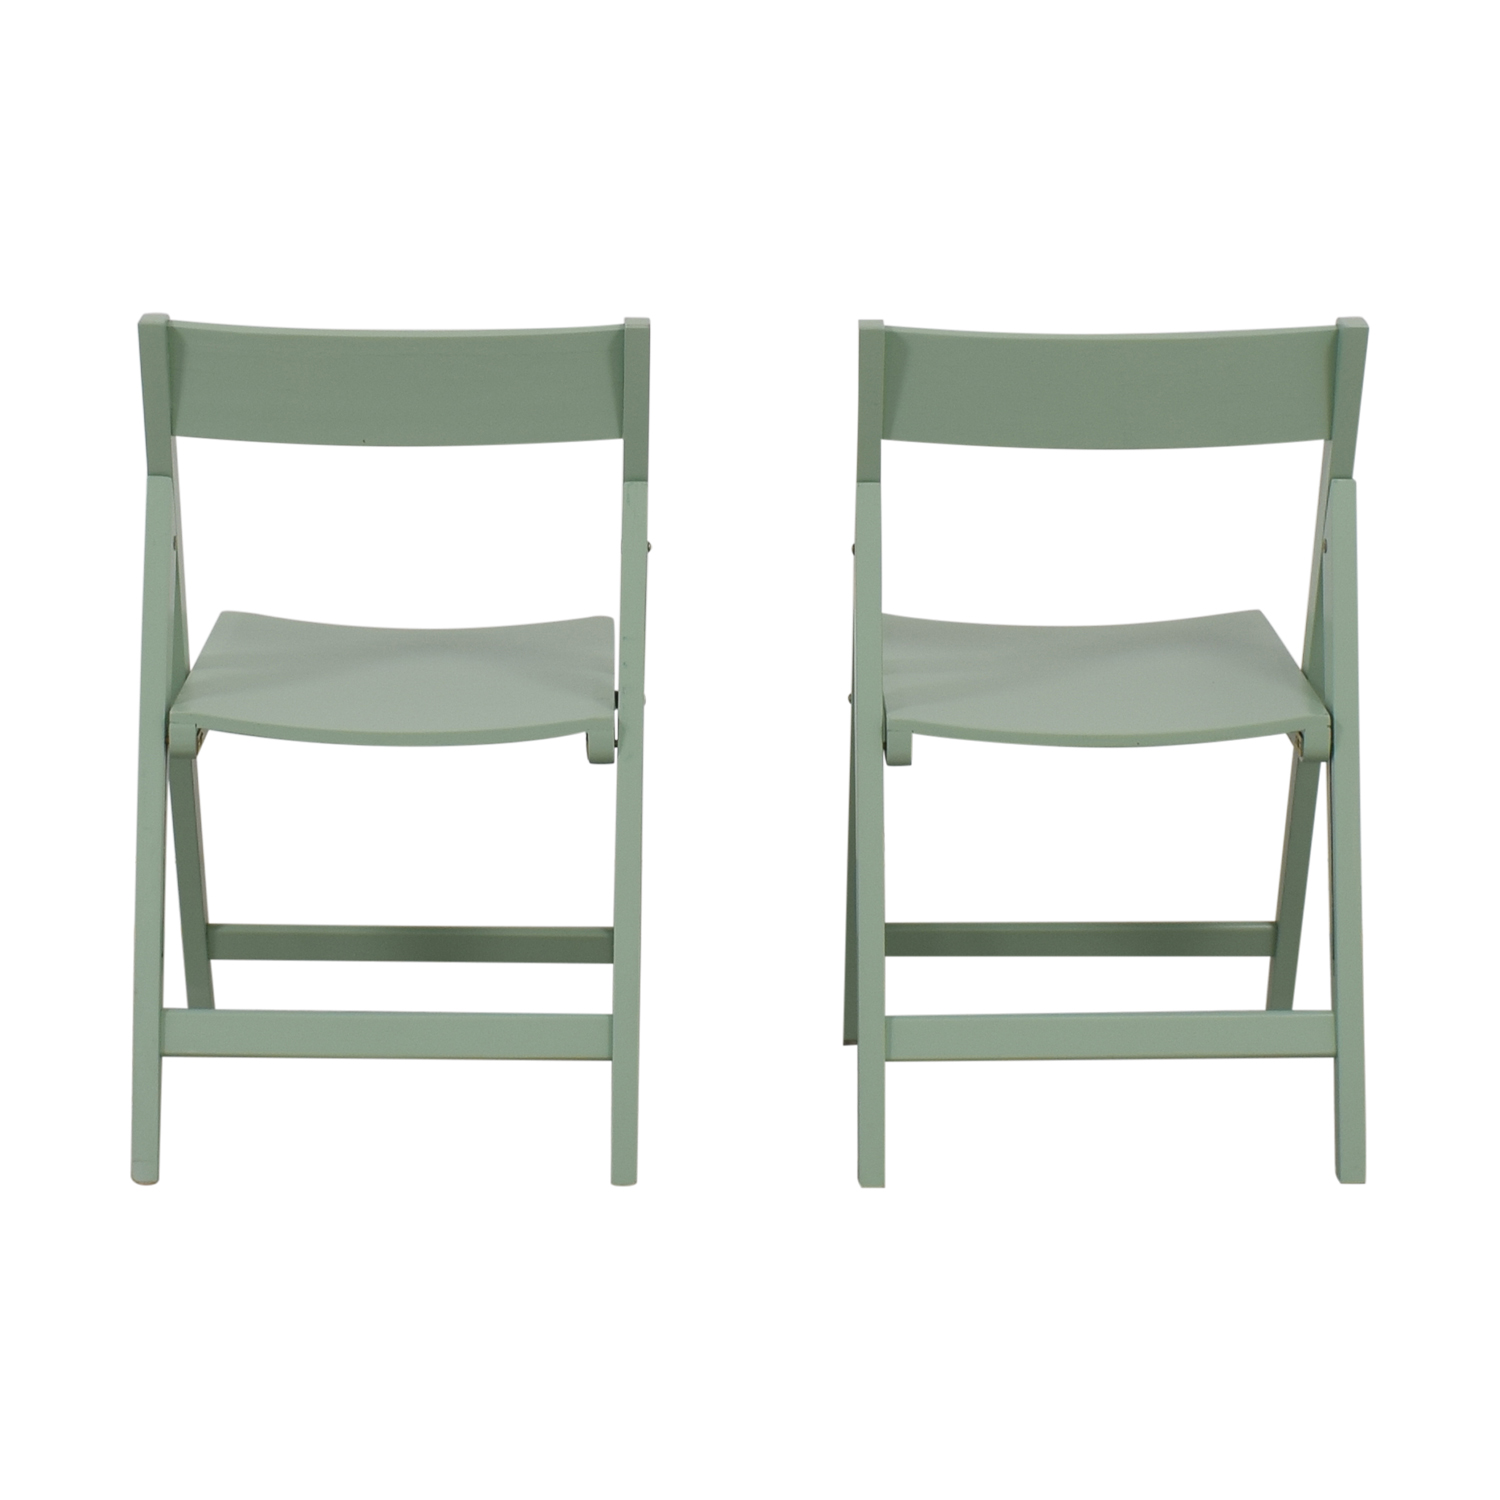 Mint Green Folding Chairs used